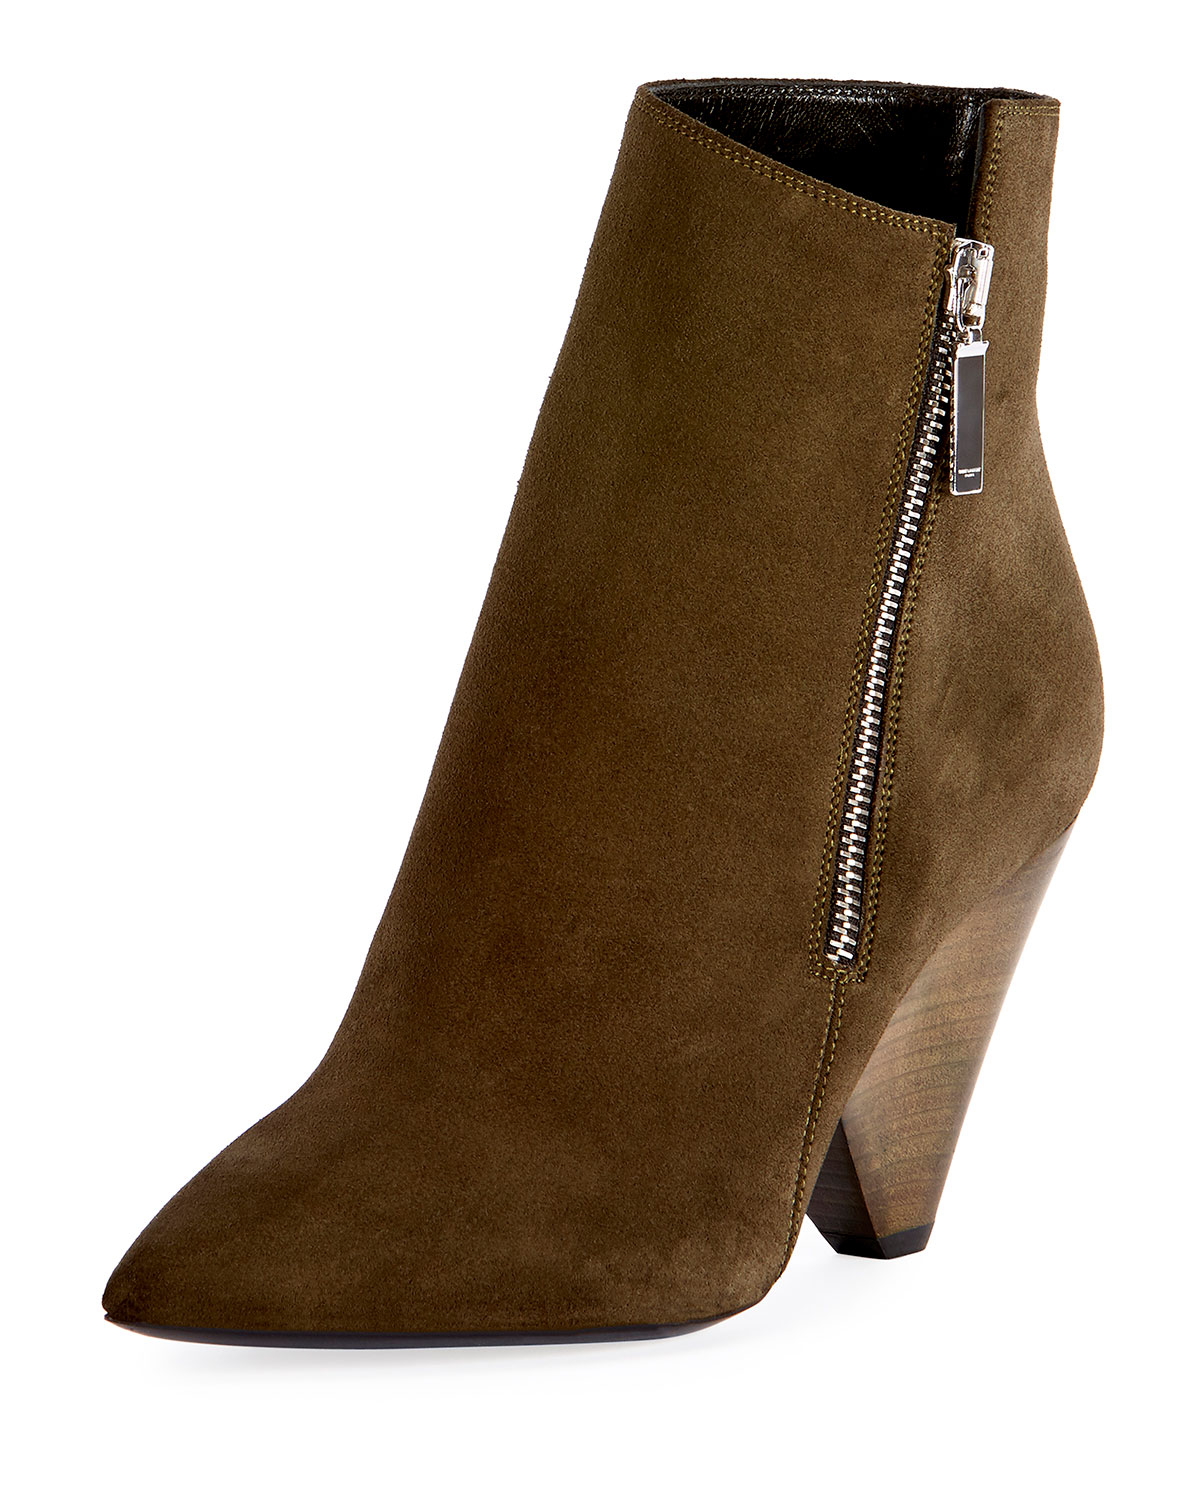 0d7d28f1106e Saint Laurent Niki Asymmetric Suede Ankle Boot